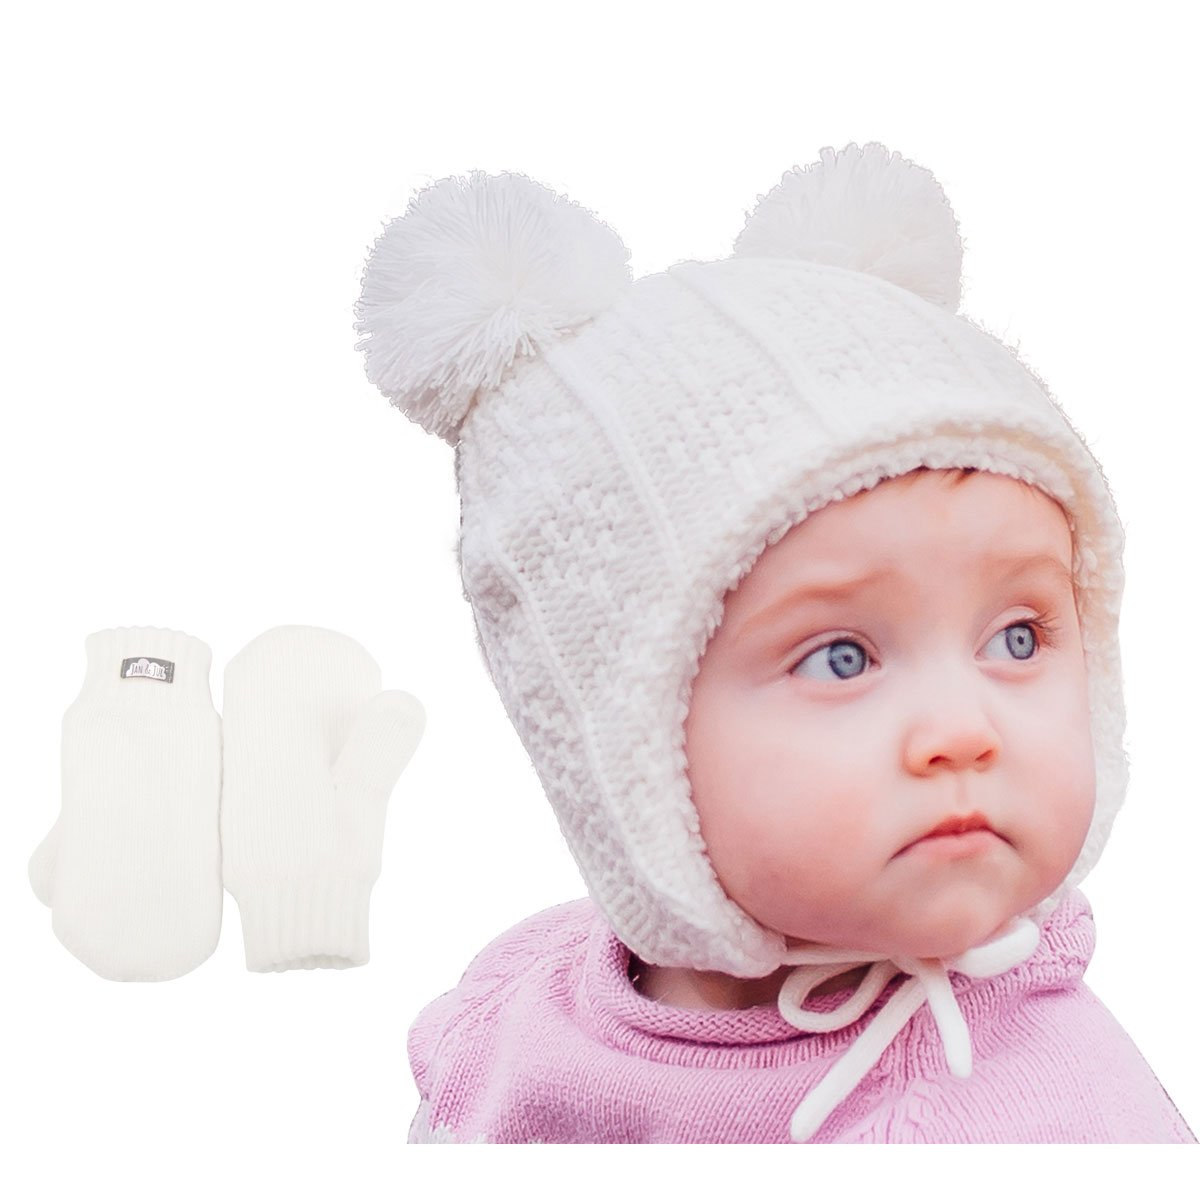 Toddler Fall Winter Ear-flap Beanie Hat (M: 6-24 Months, Bunny Sisters) Twinklebelle Design Inc. 20-07M